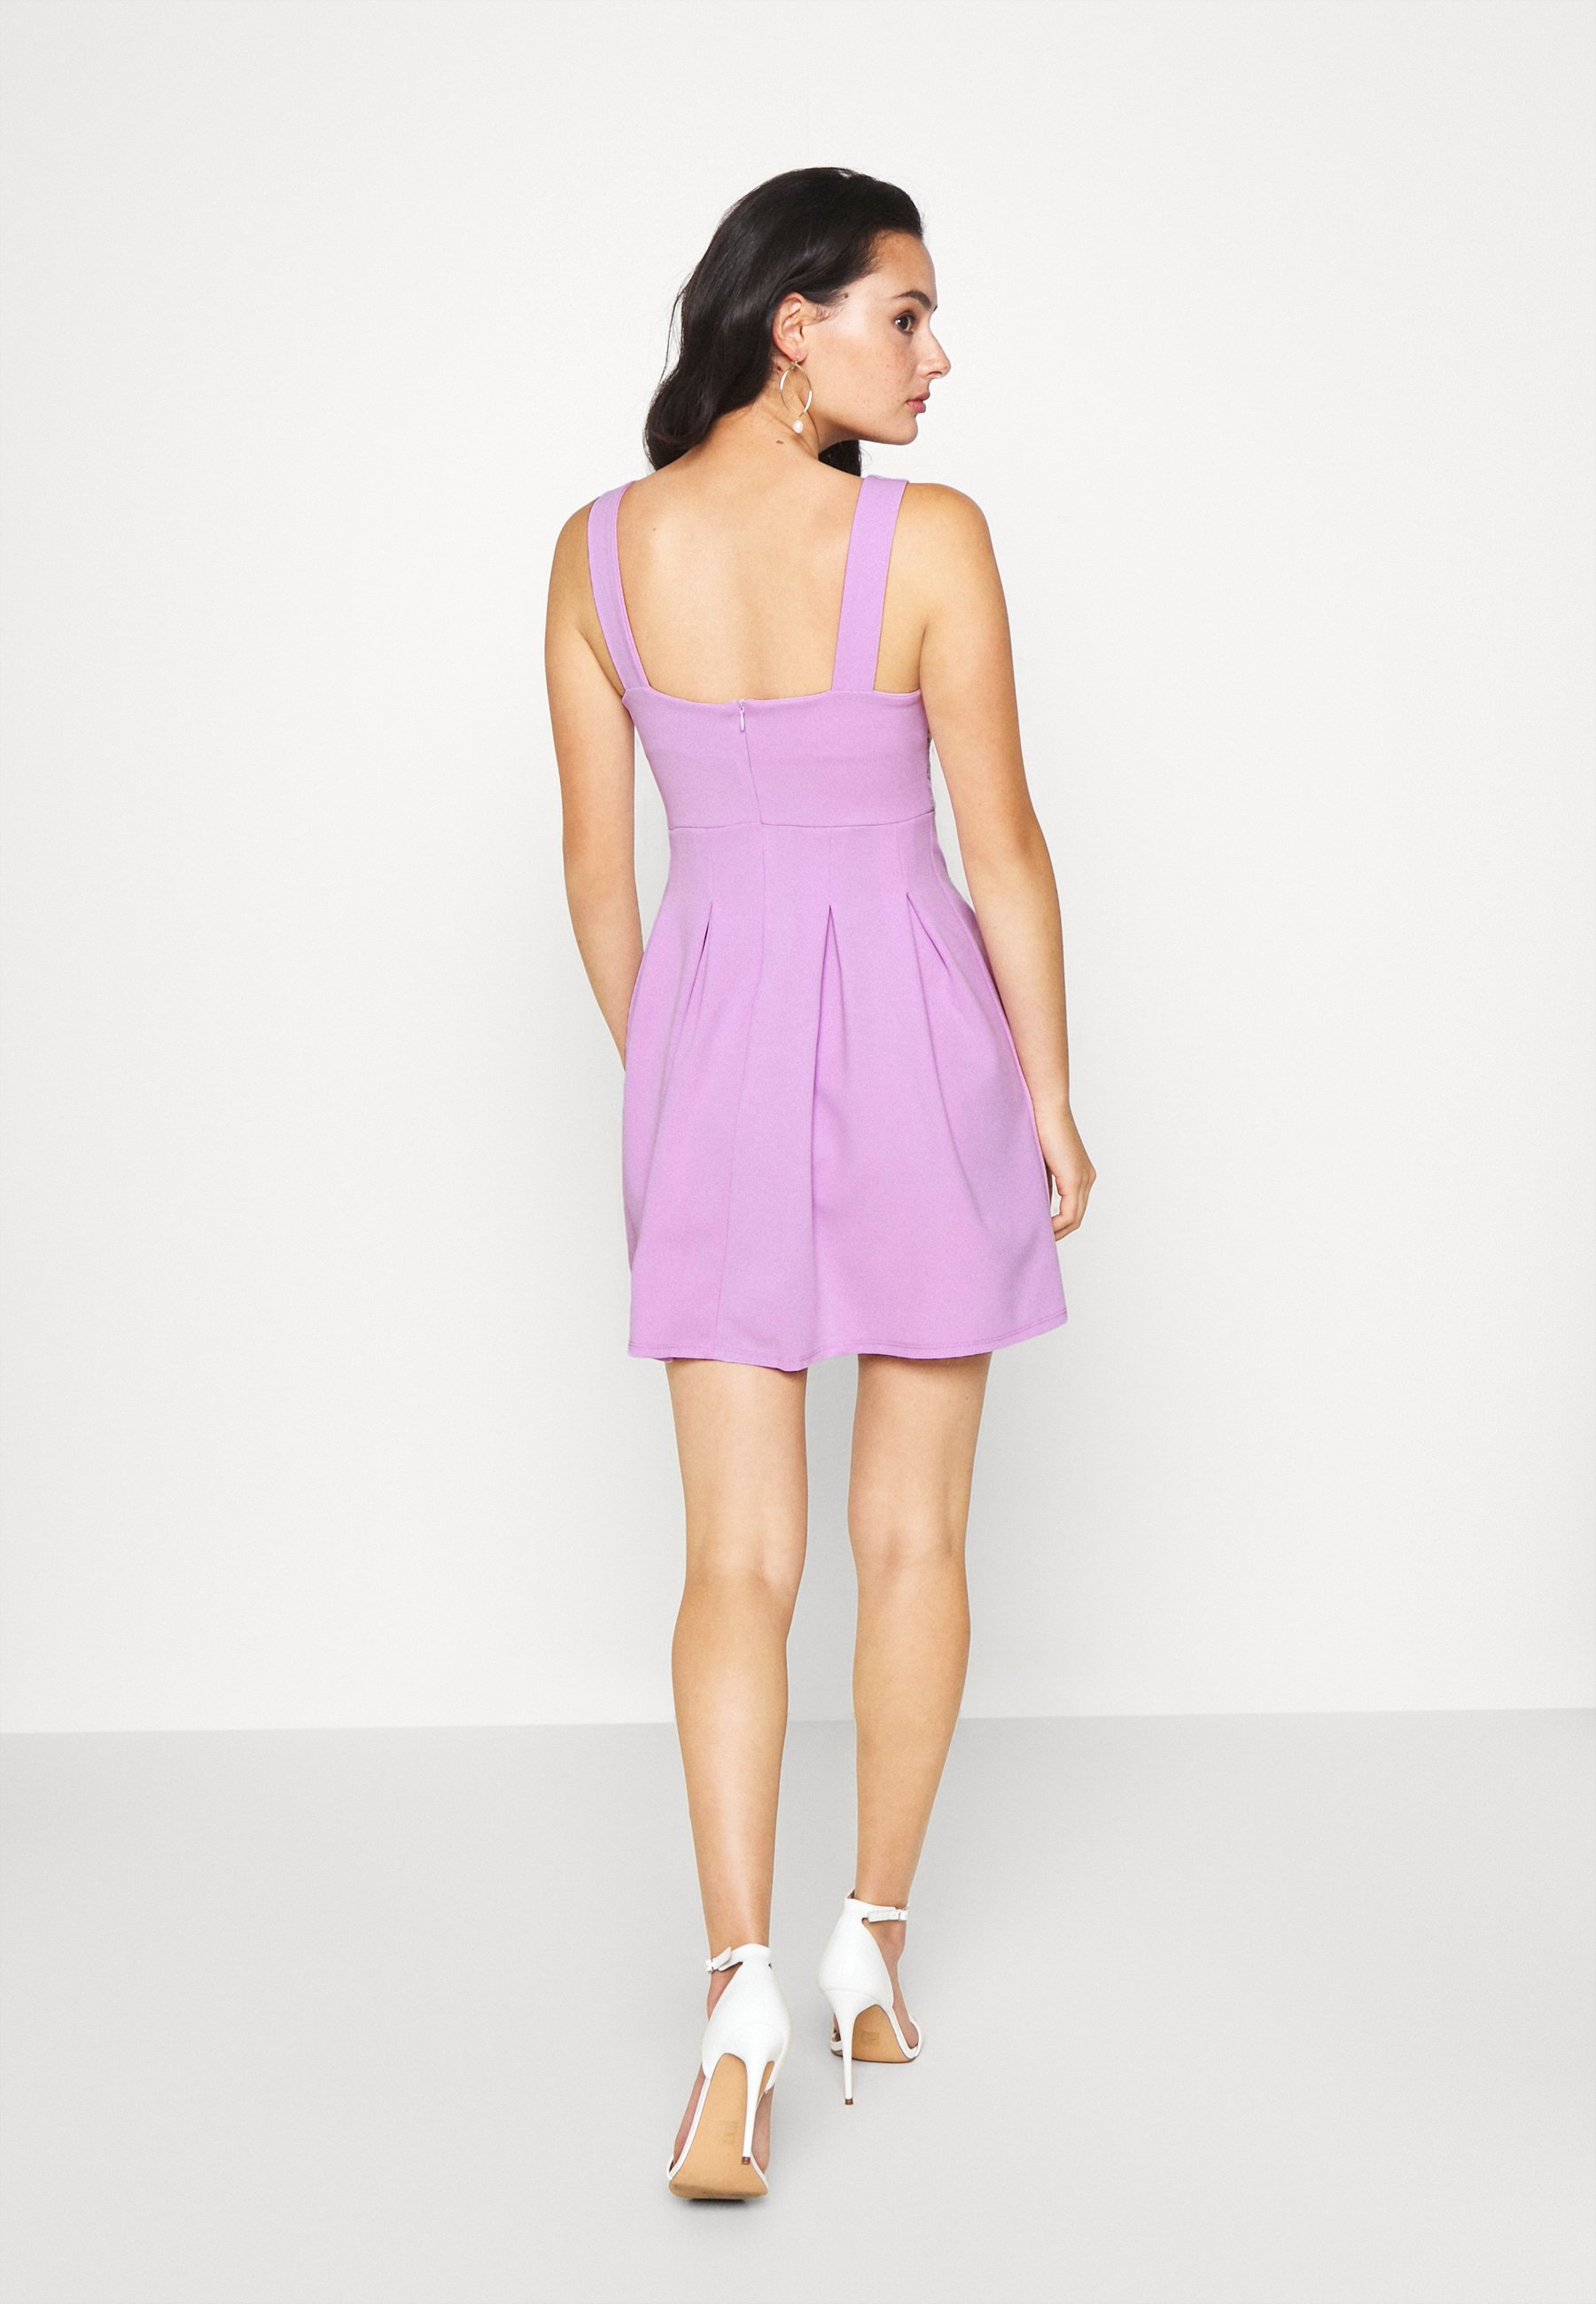 WAL G. TOP MINI DRESS Jerseykleid lilac/flieder